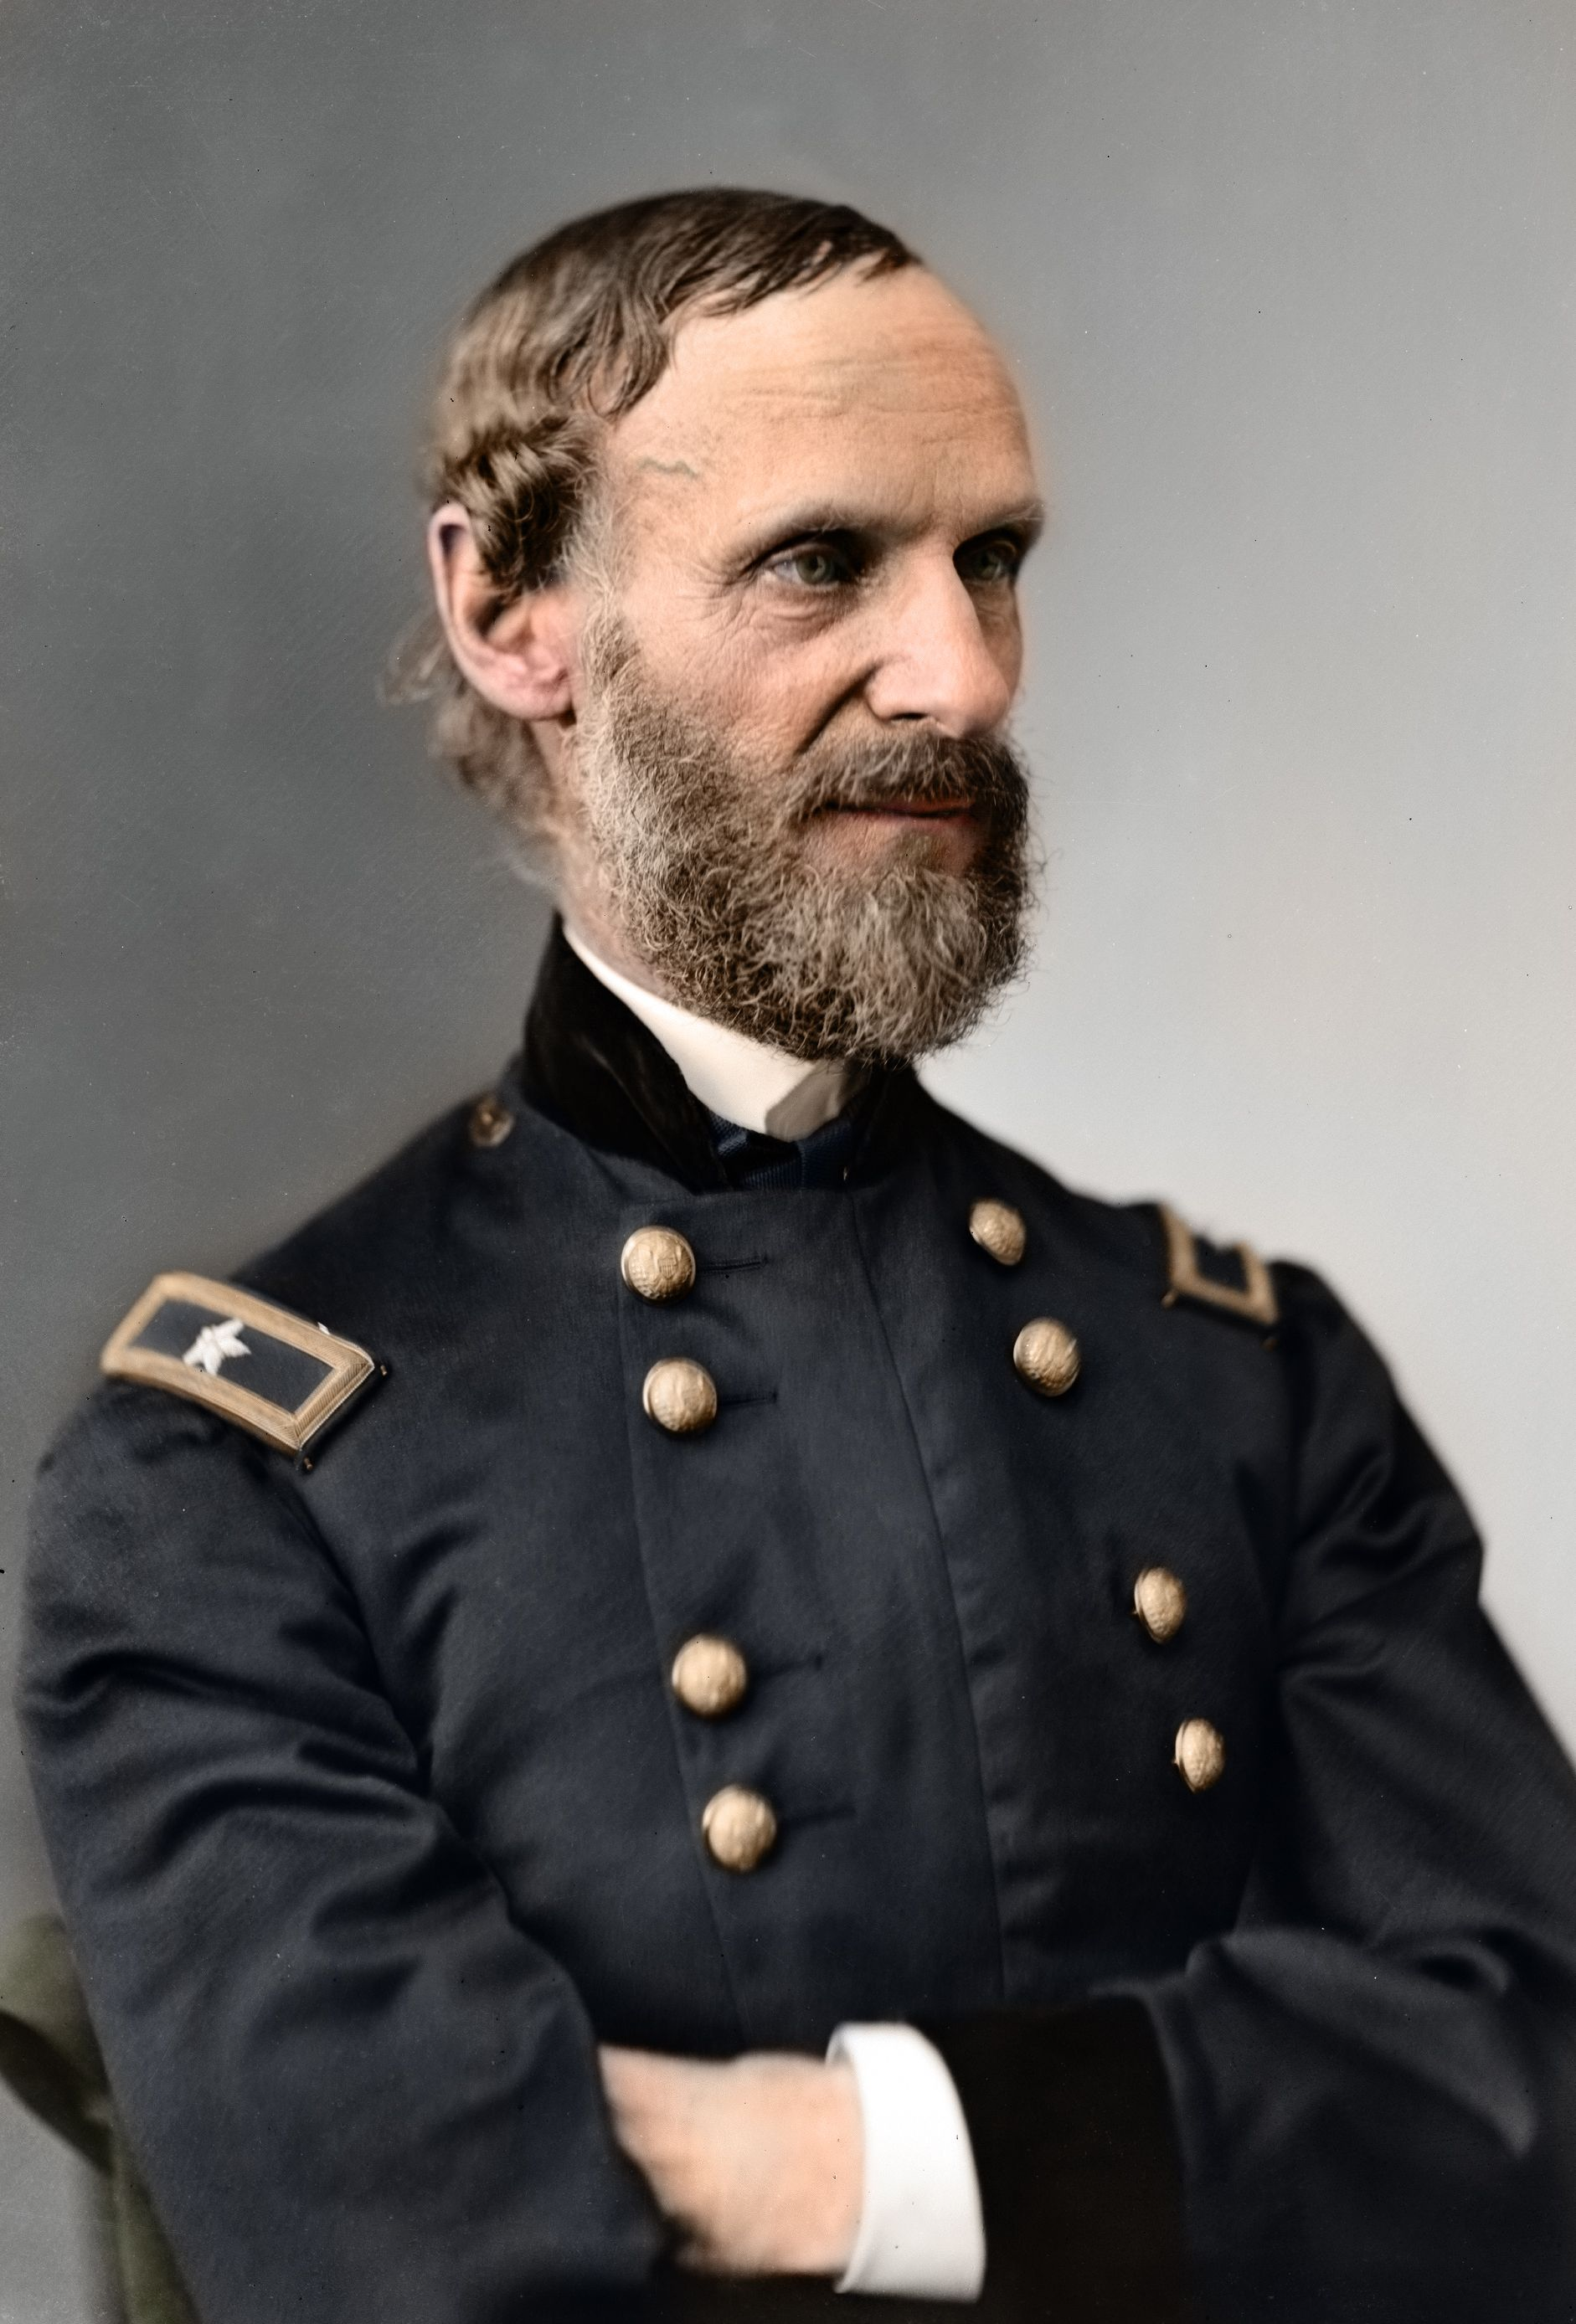 Brigadier General Edward D. Townsend of the Union, ca. 1865